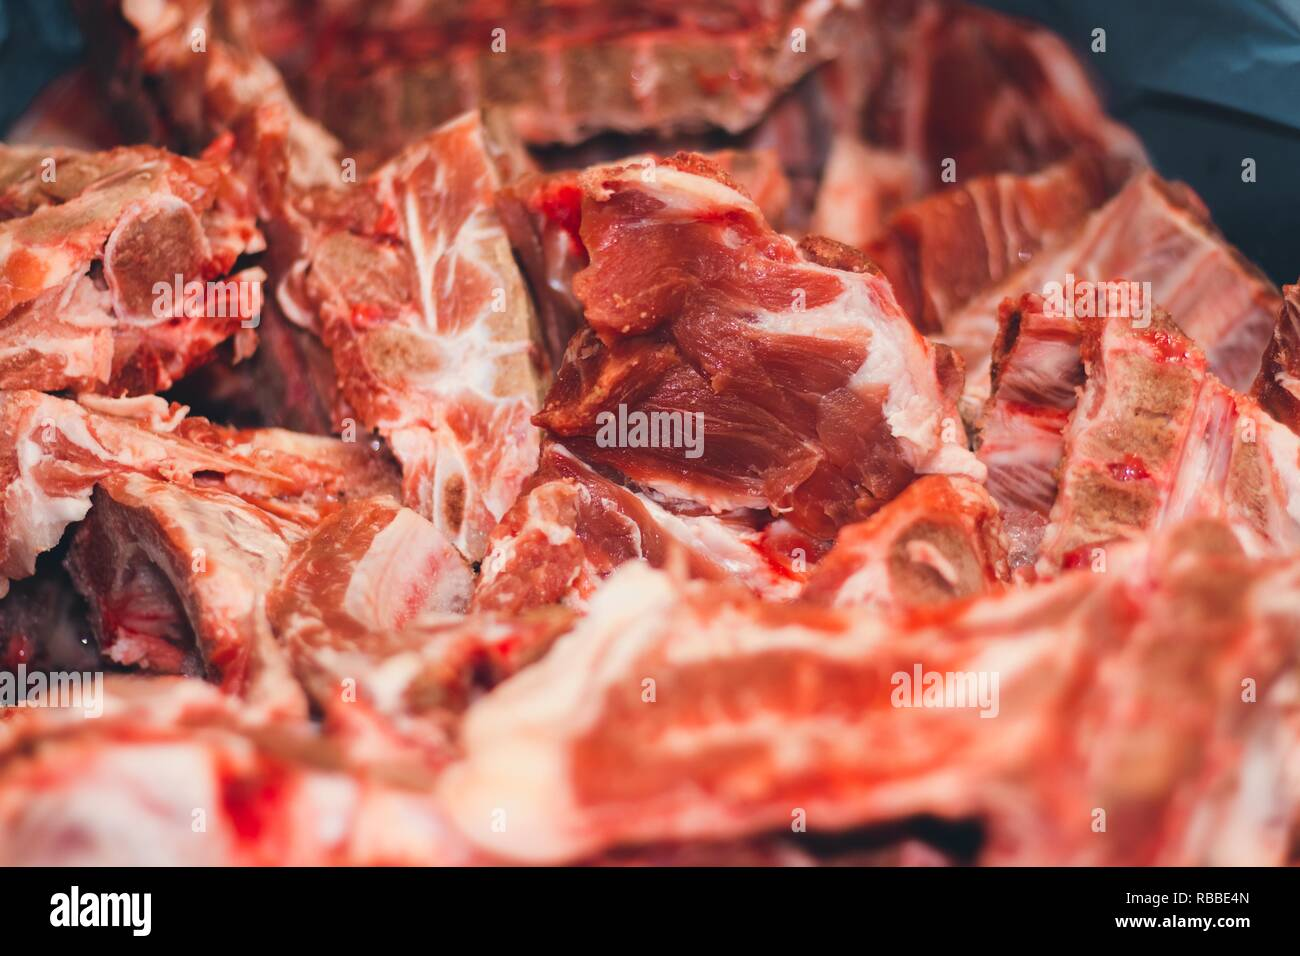 Juicy slices of fresh red pork meat  Meat is made from animals from